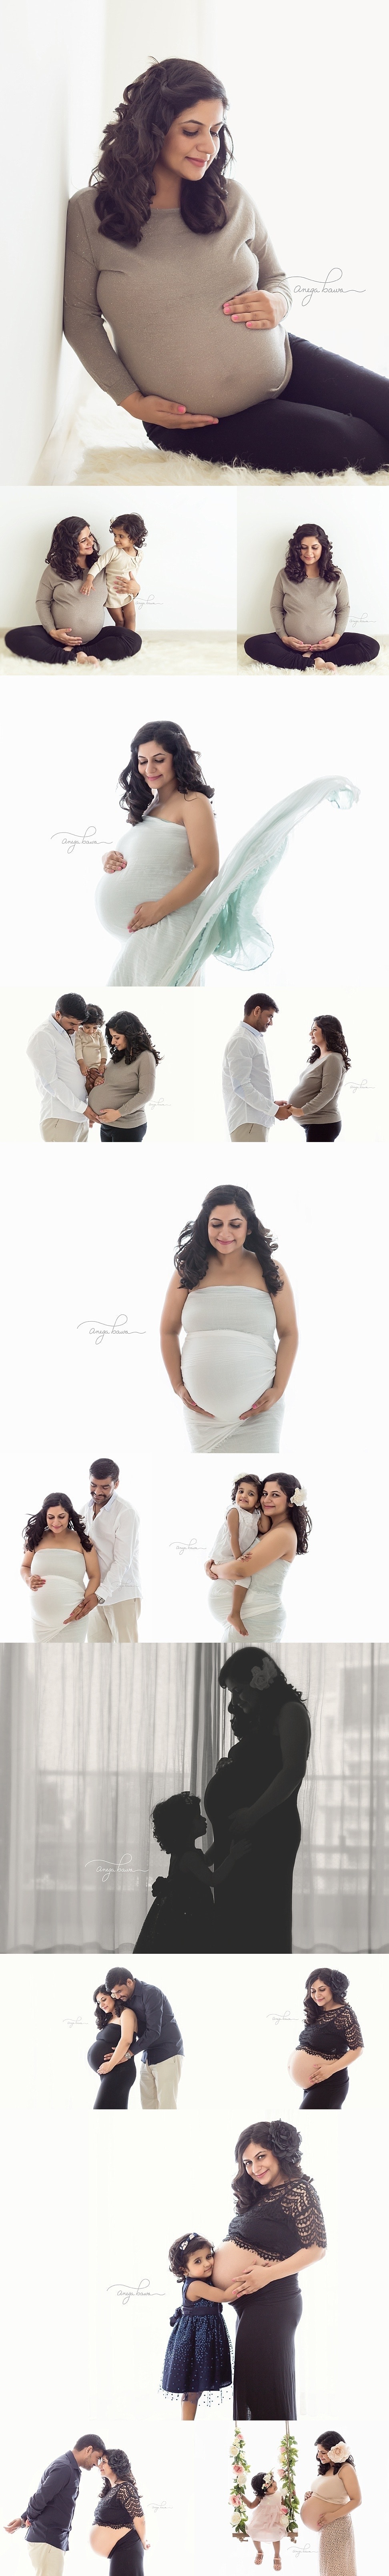 india_pregnancy_photography_with_child